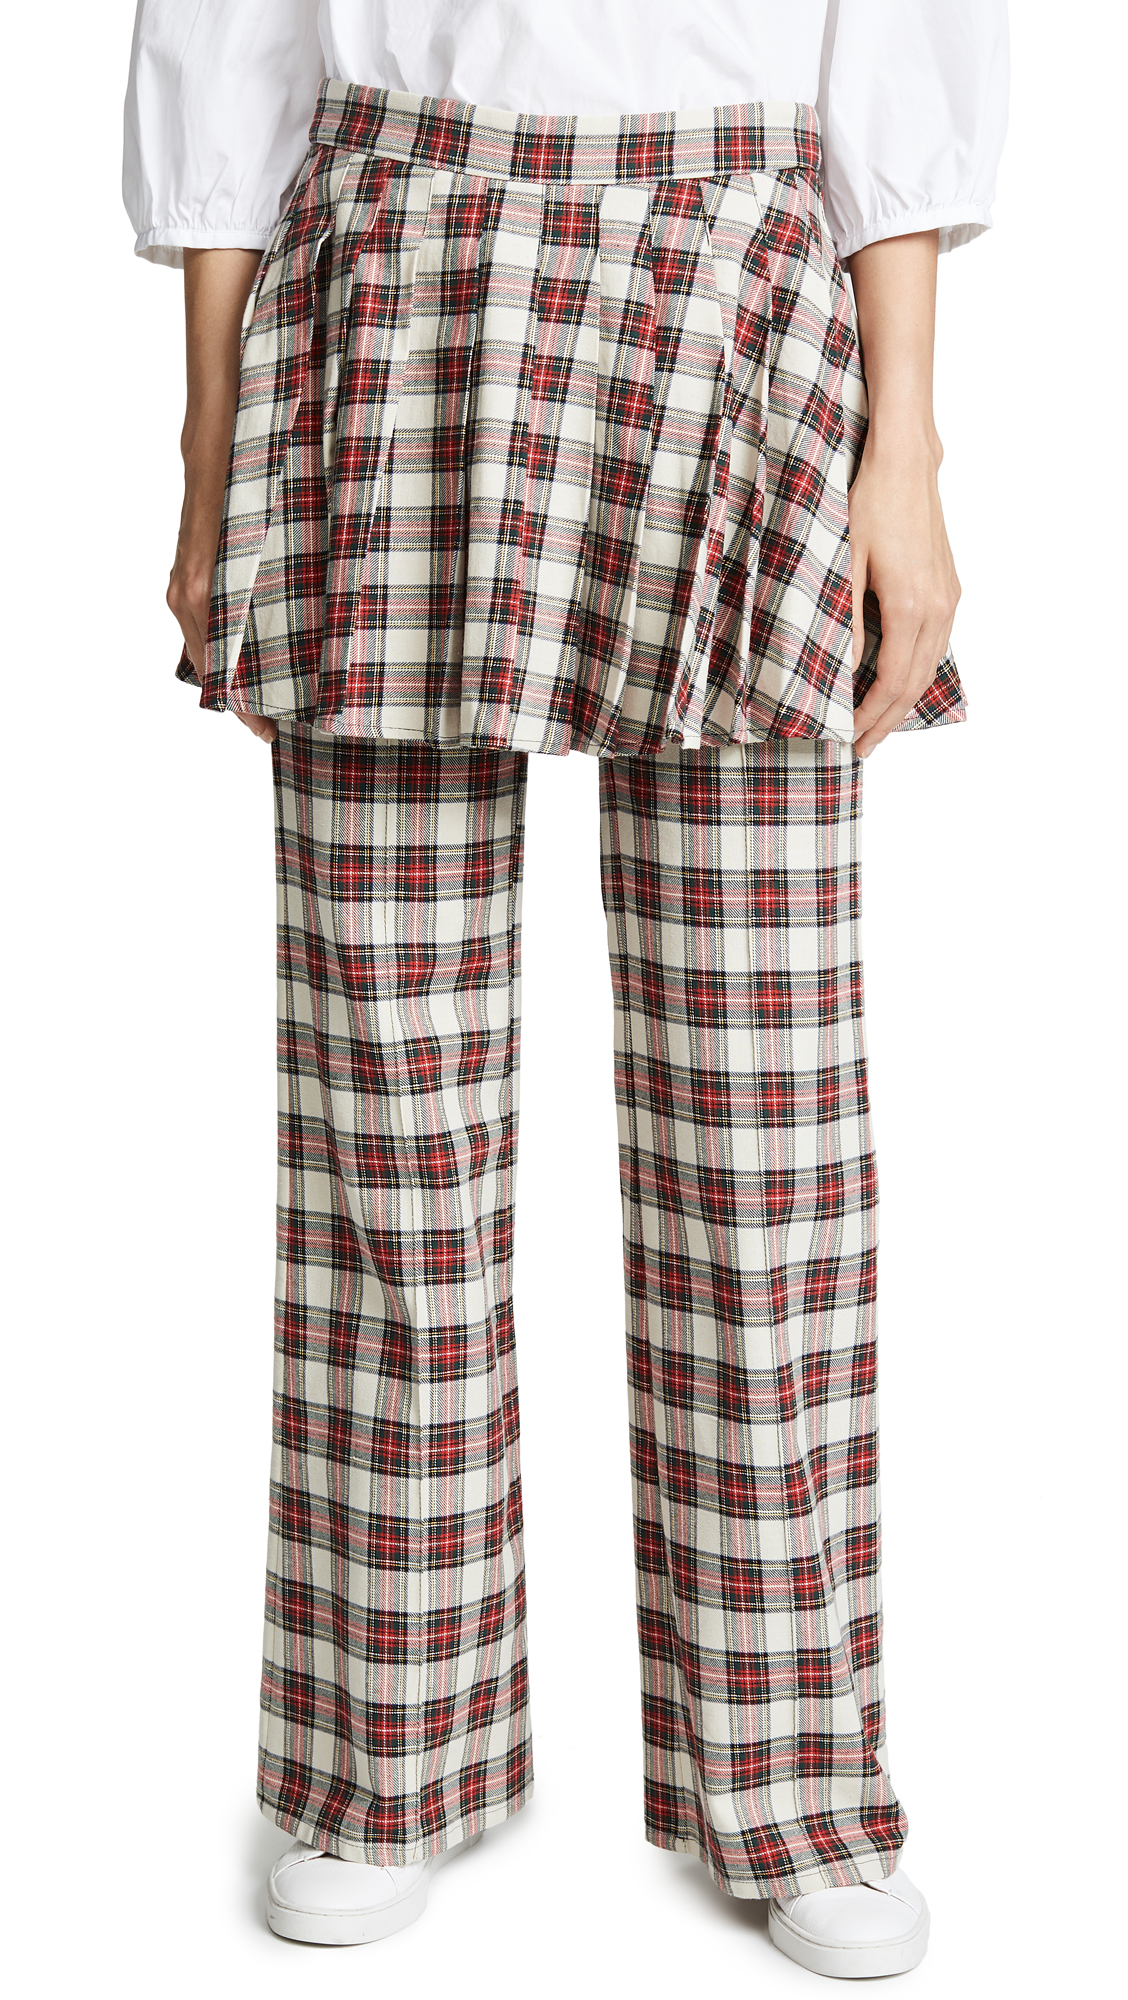 She Is In Charge Skirted Wide-Leg Plaid Pants in Cream/Red Tartan Plaid